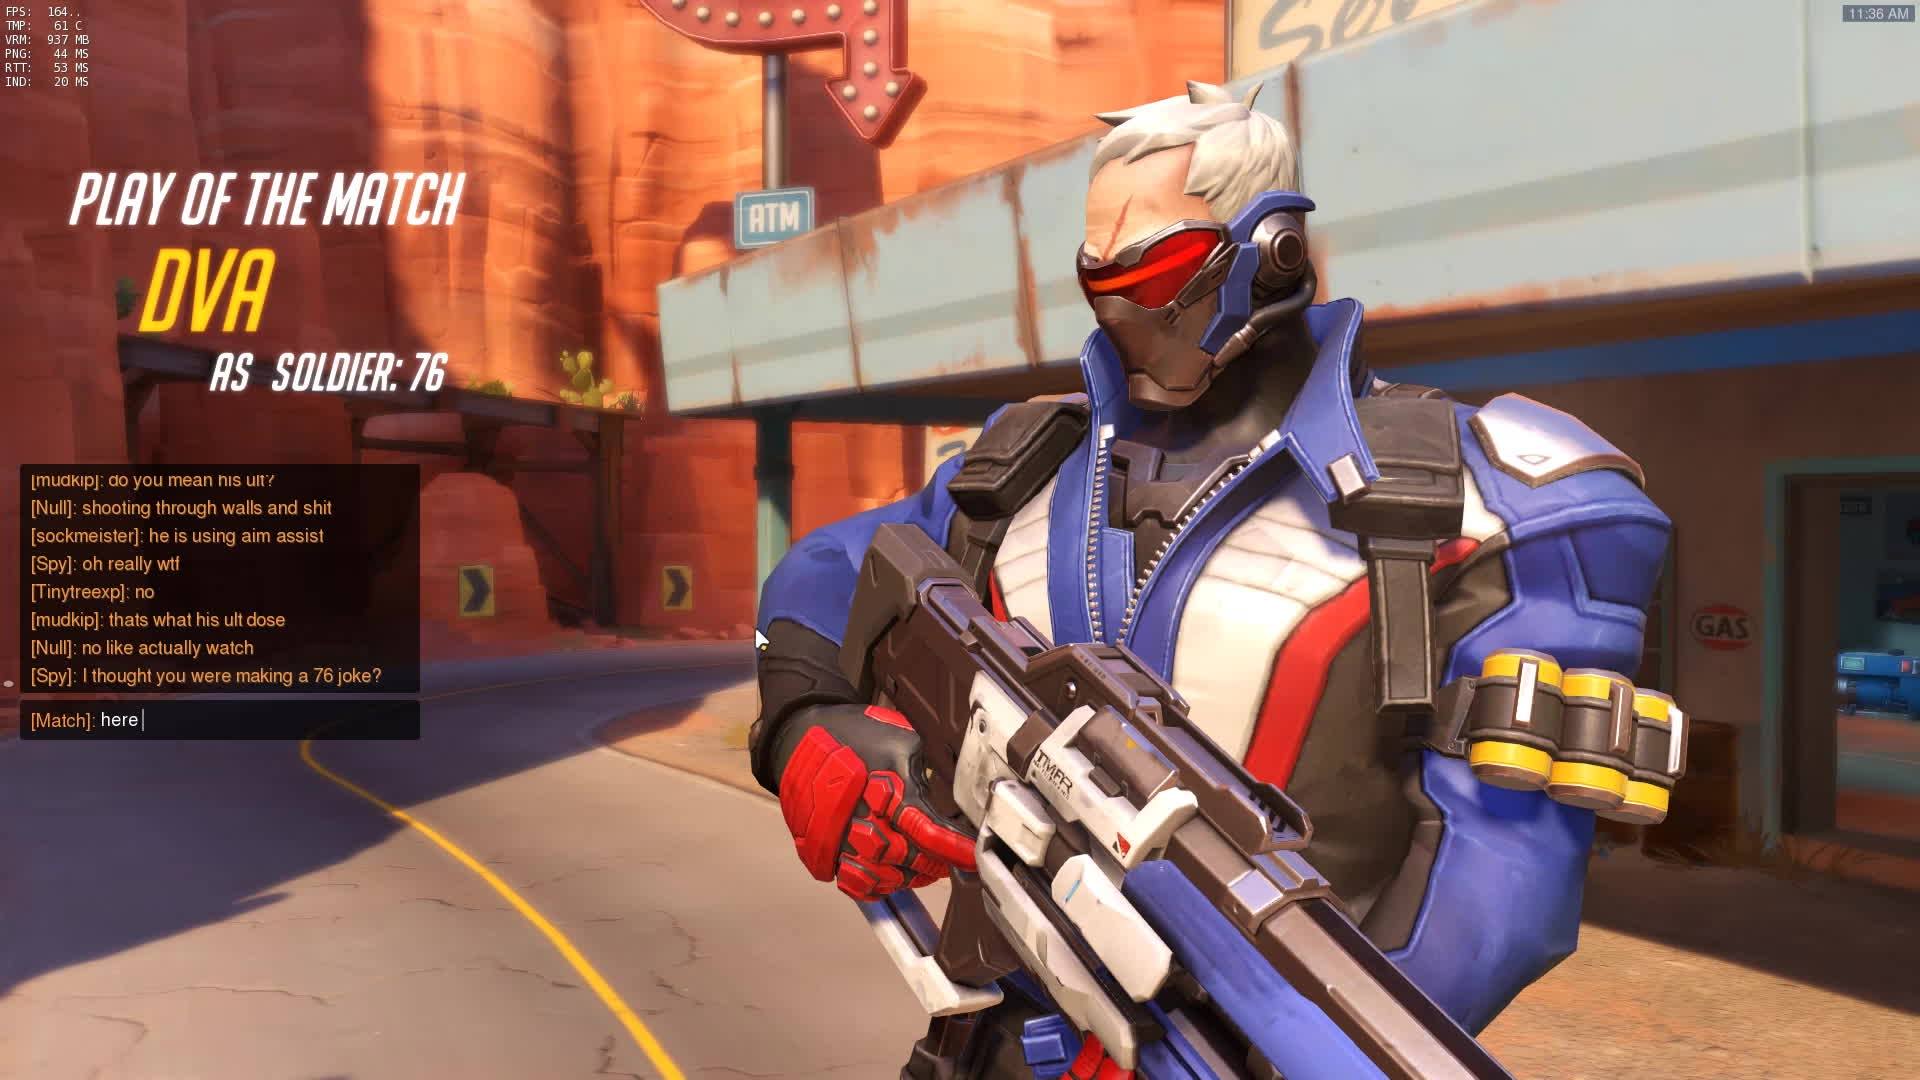 competitiveoverwatch, report this guy DVA#12205 GIFs